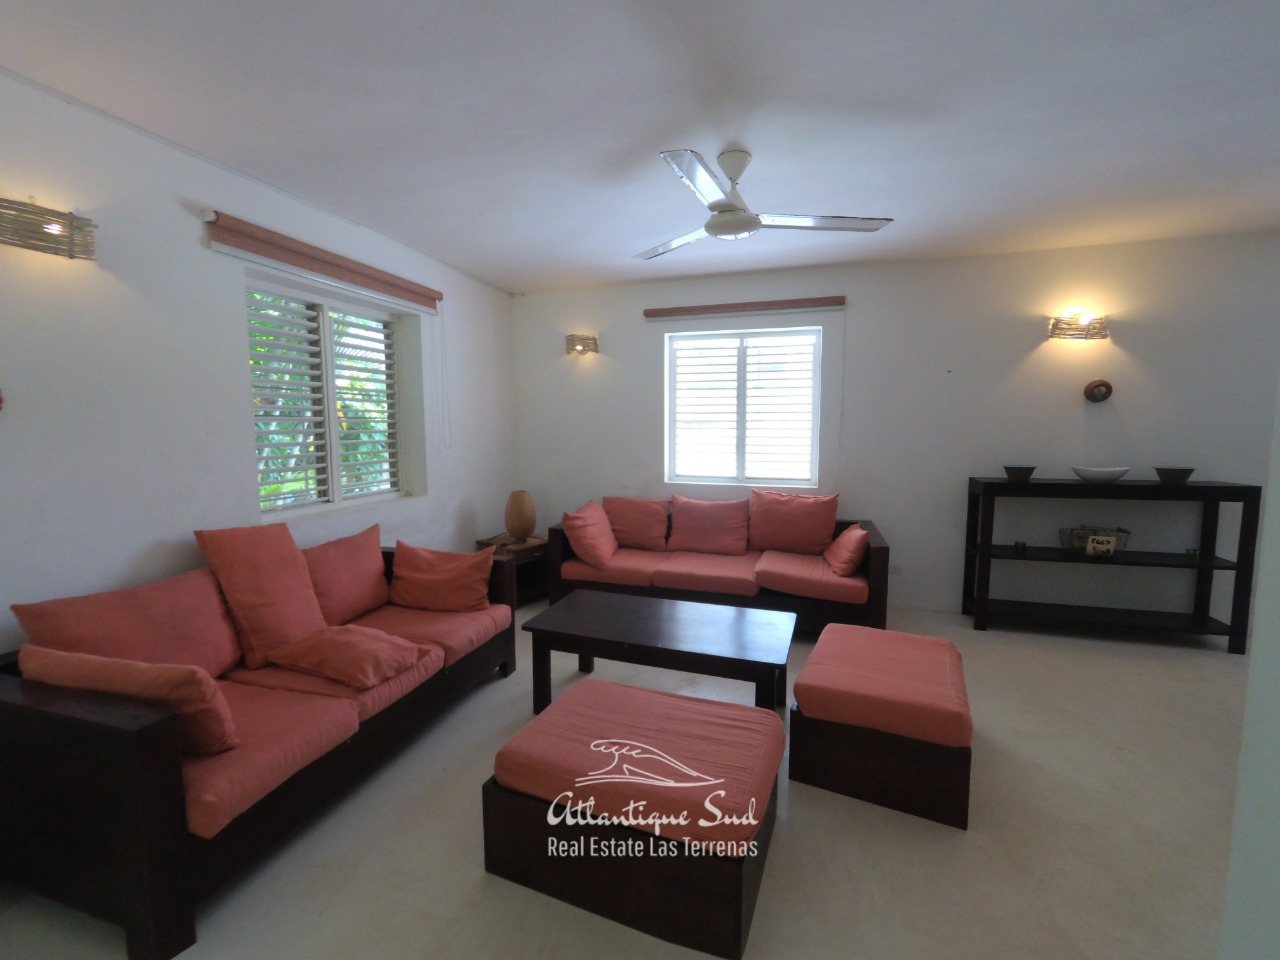 Villa for sale steps from the beach in las terrenas 1.jpeg